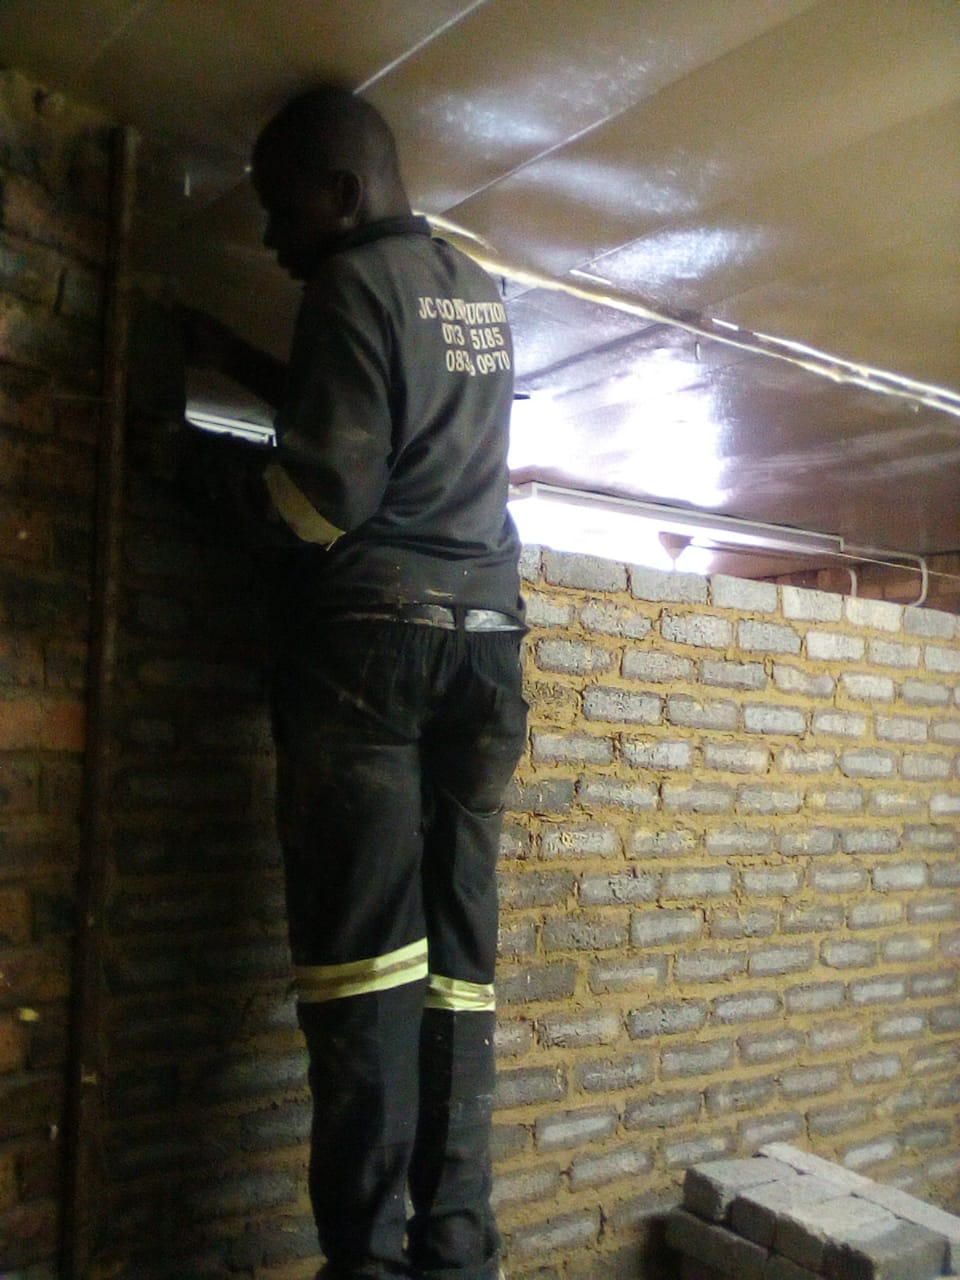 We do waterproofing,torch-on,renovations,building,tiling,paving,plastering,drywalling,painting etc